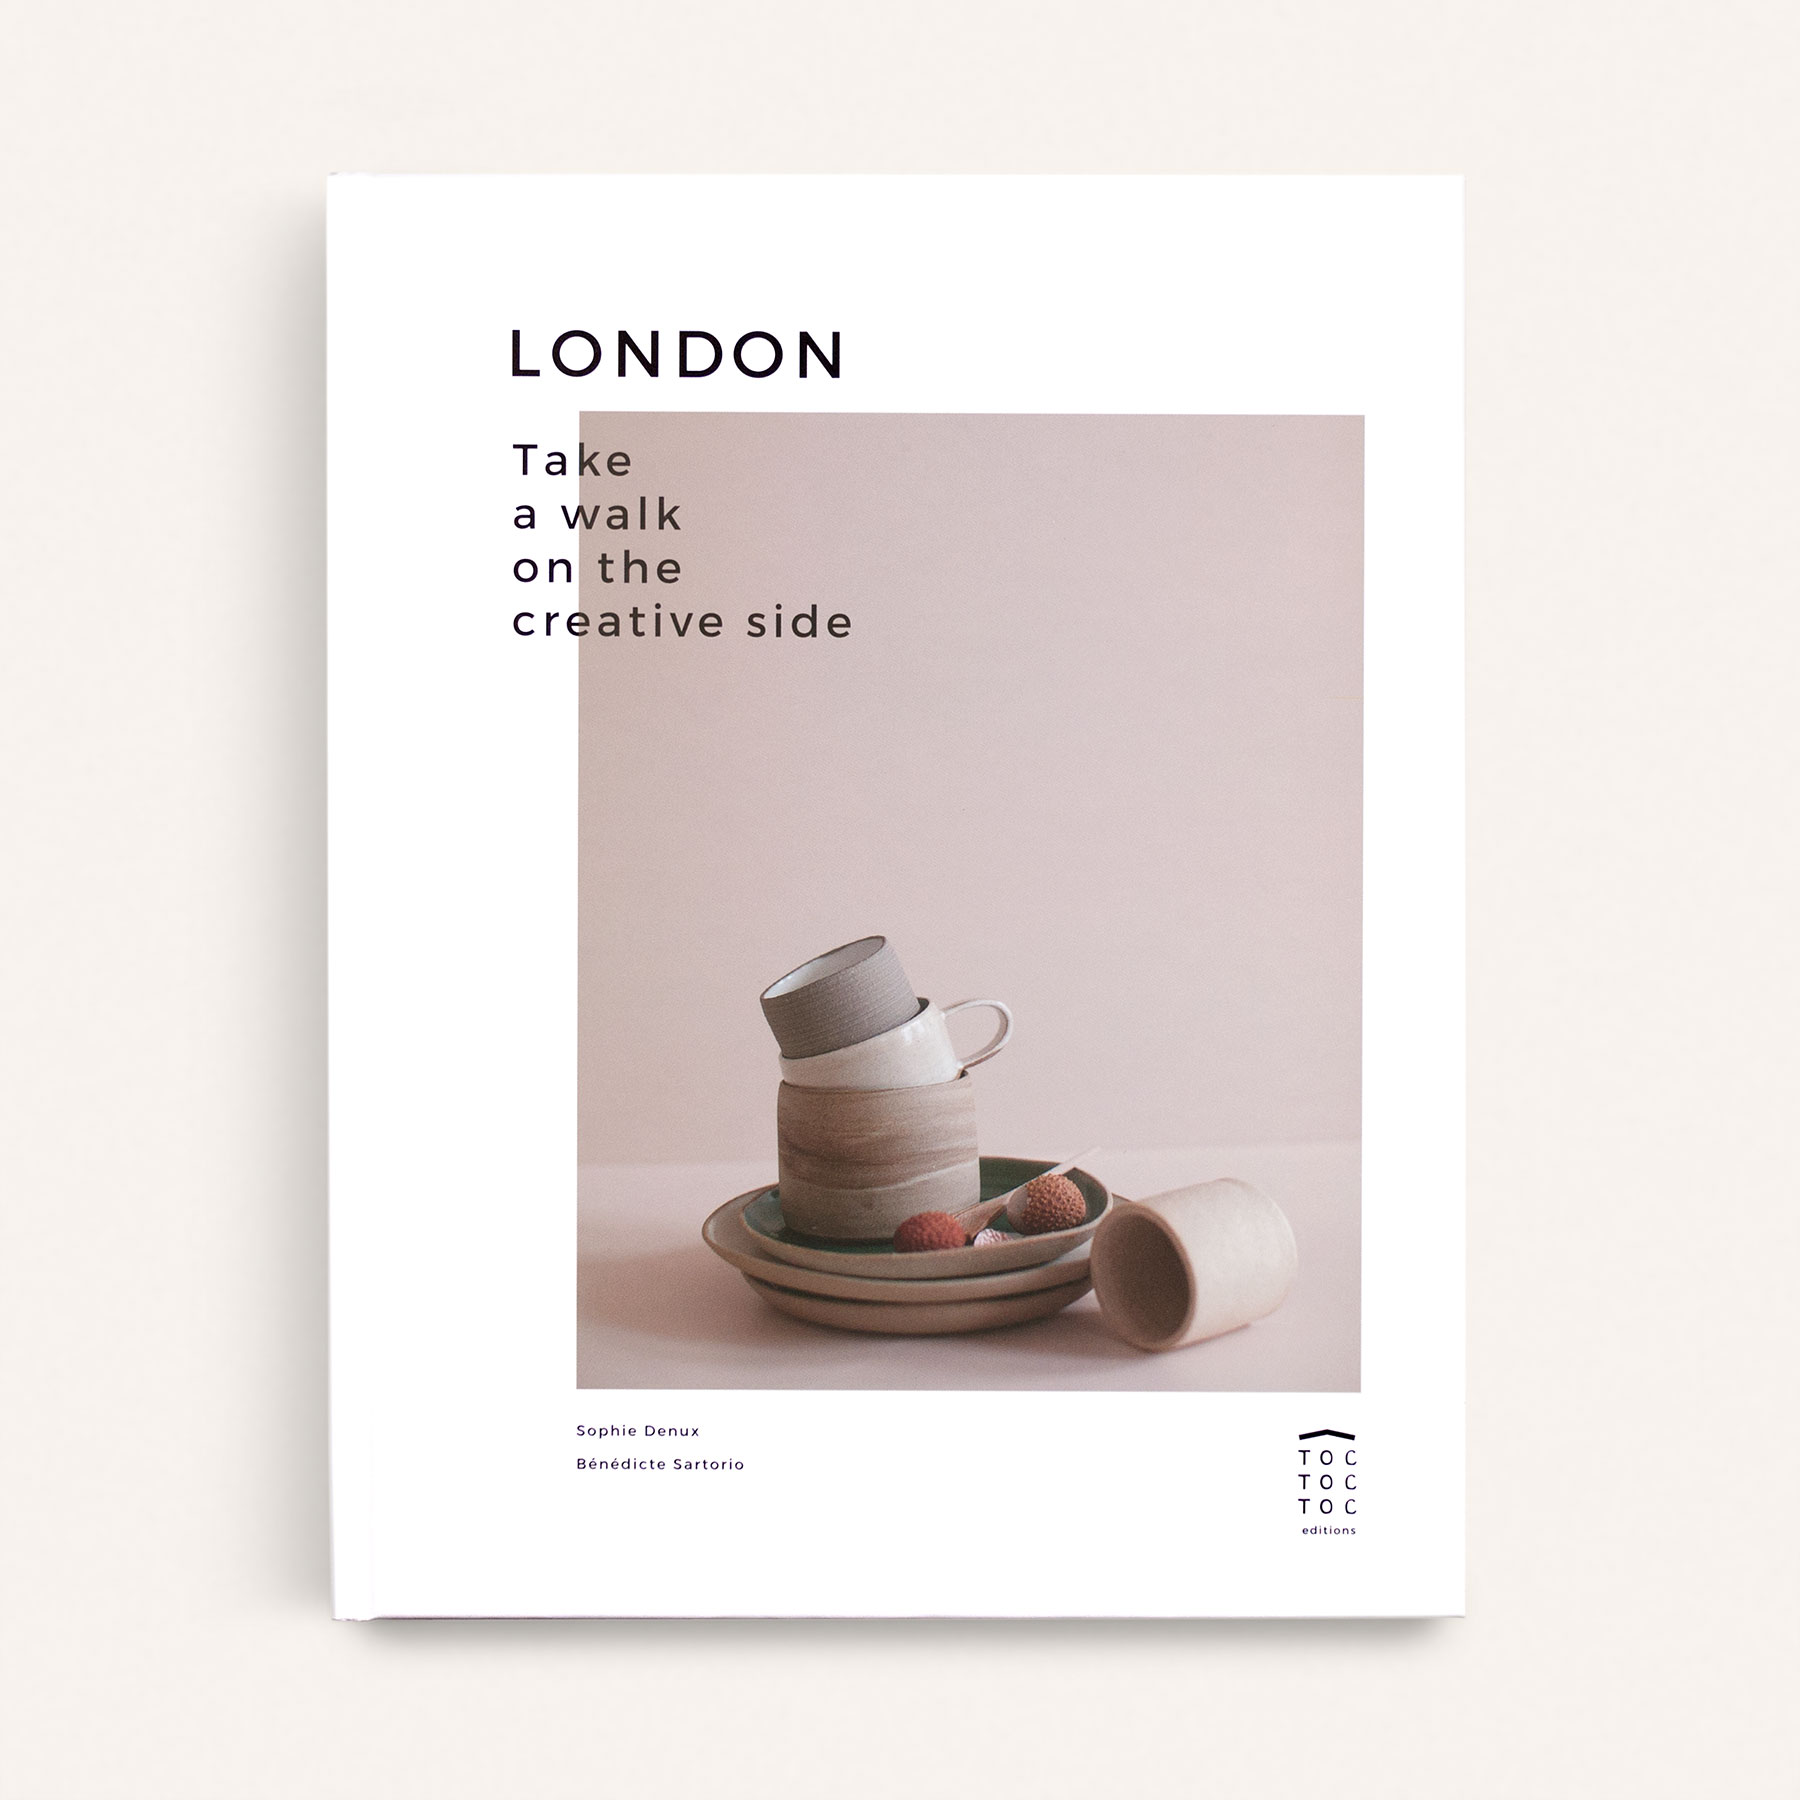 London – Take a Walk on the Creative Side – Toc Toc Toc